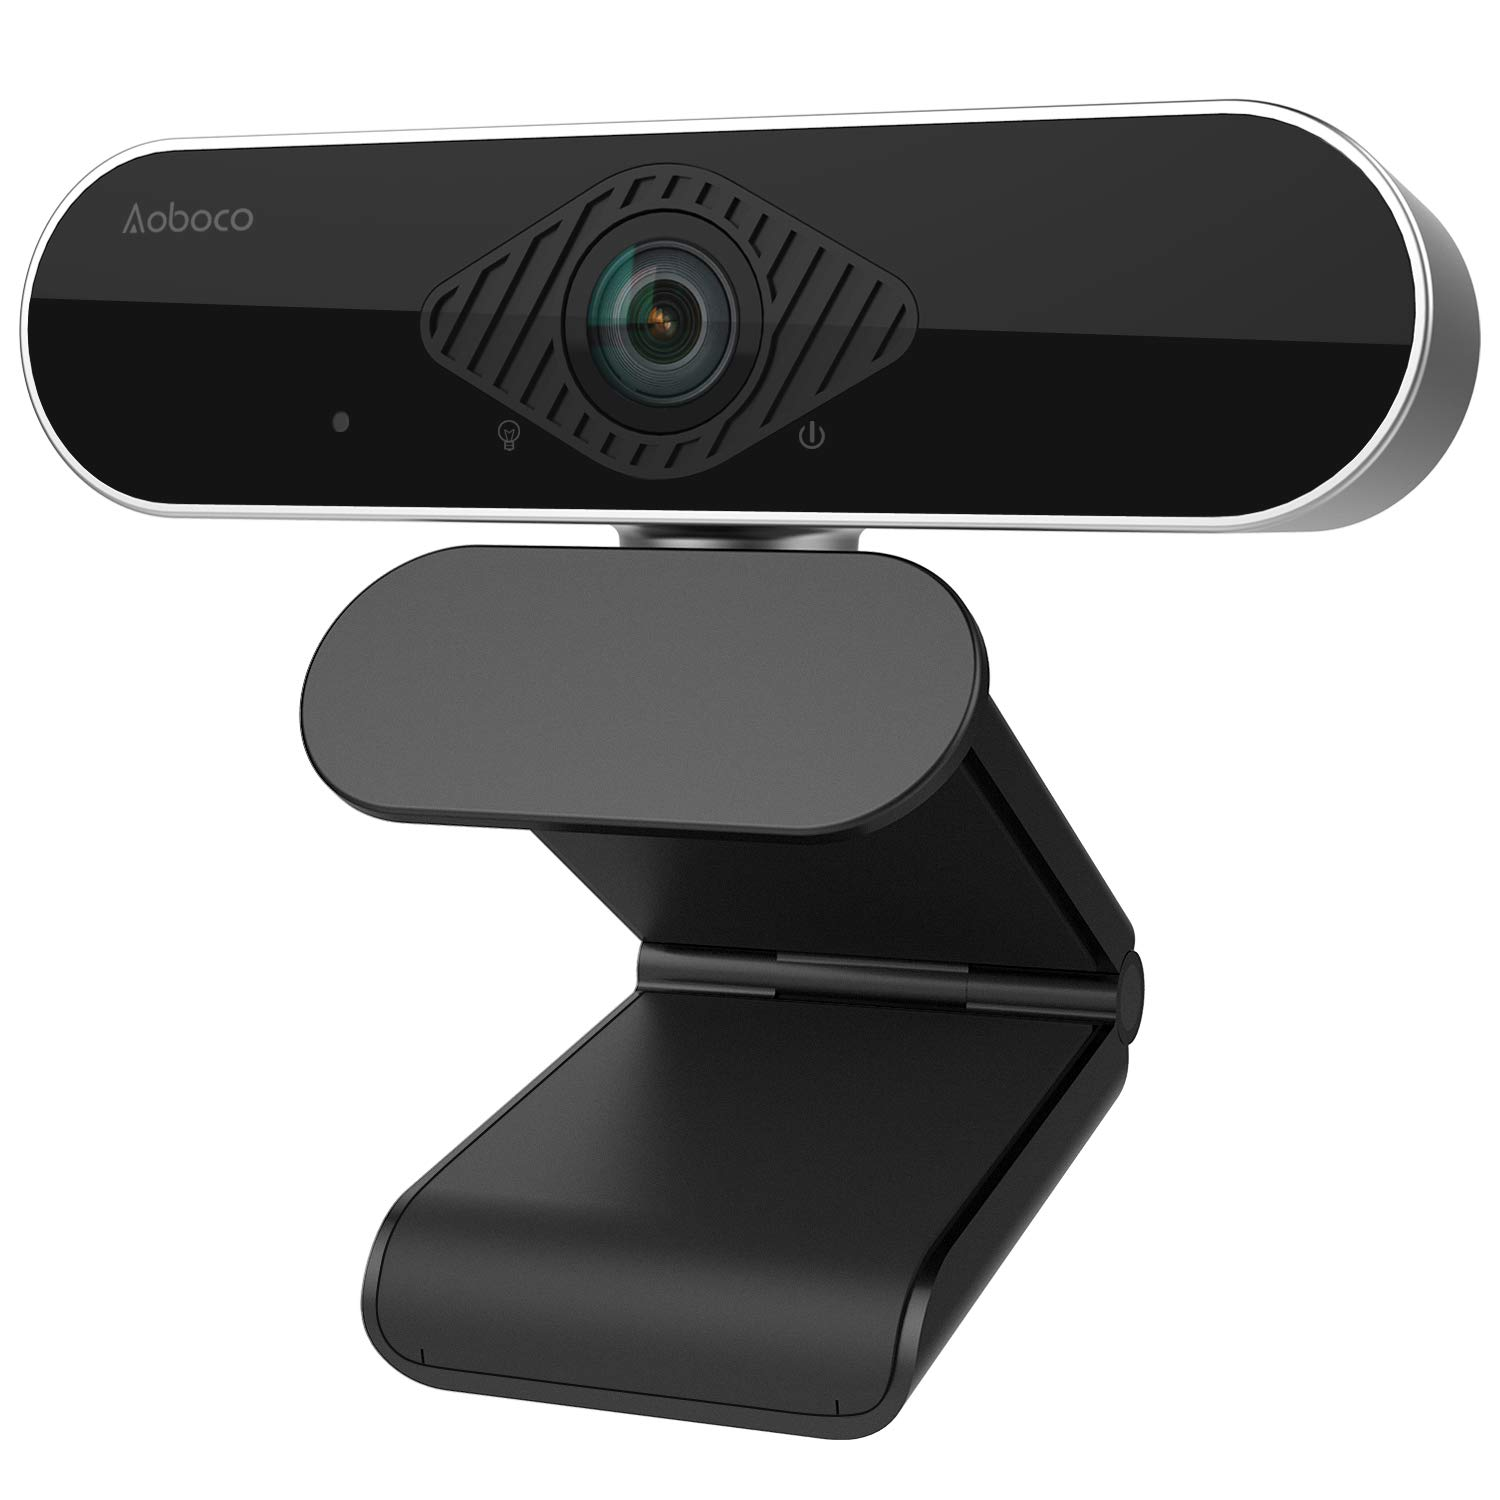 Auto-Focus Streaming Webcam, Aoboco Webcam for Stream HD 1080p, Noise-Concelling Mic 120-Degree Wide View Angle USB Web Camera for Twitch Xbox one Skype YouTube OBS Xsplit